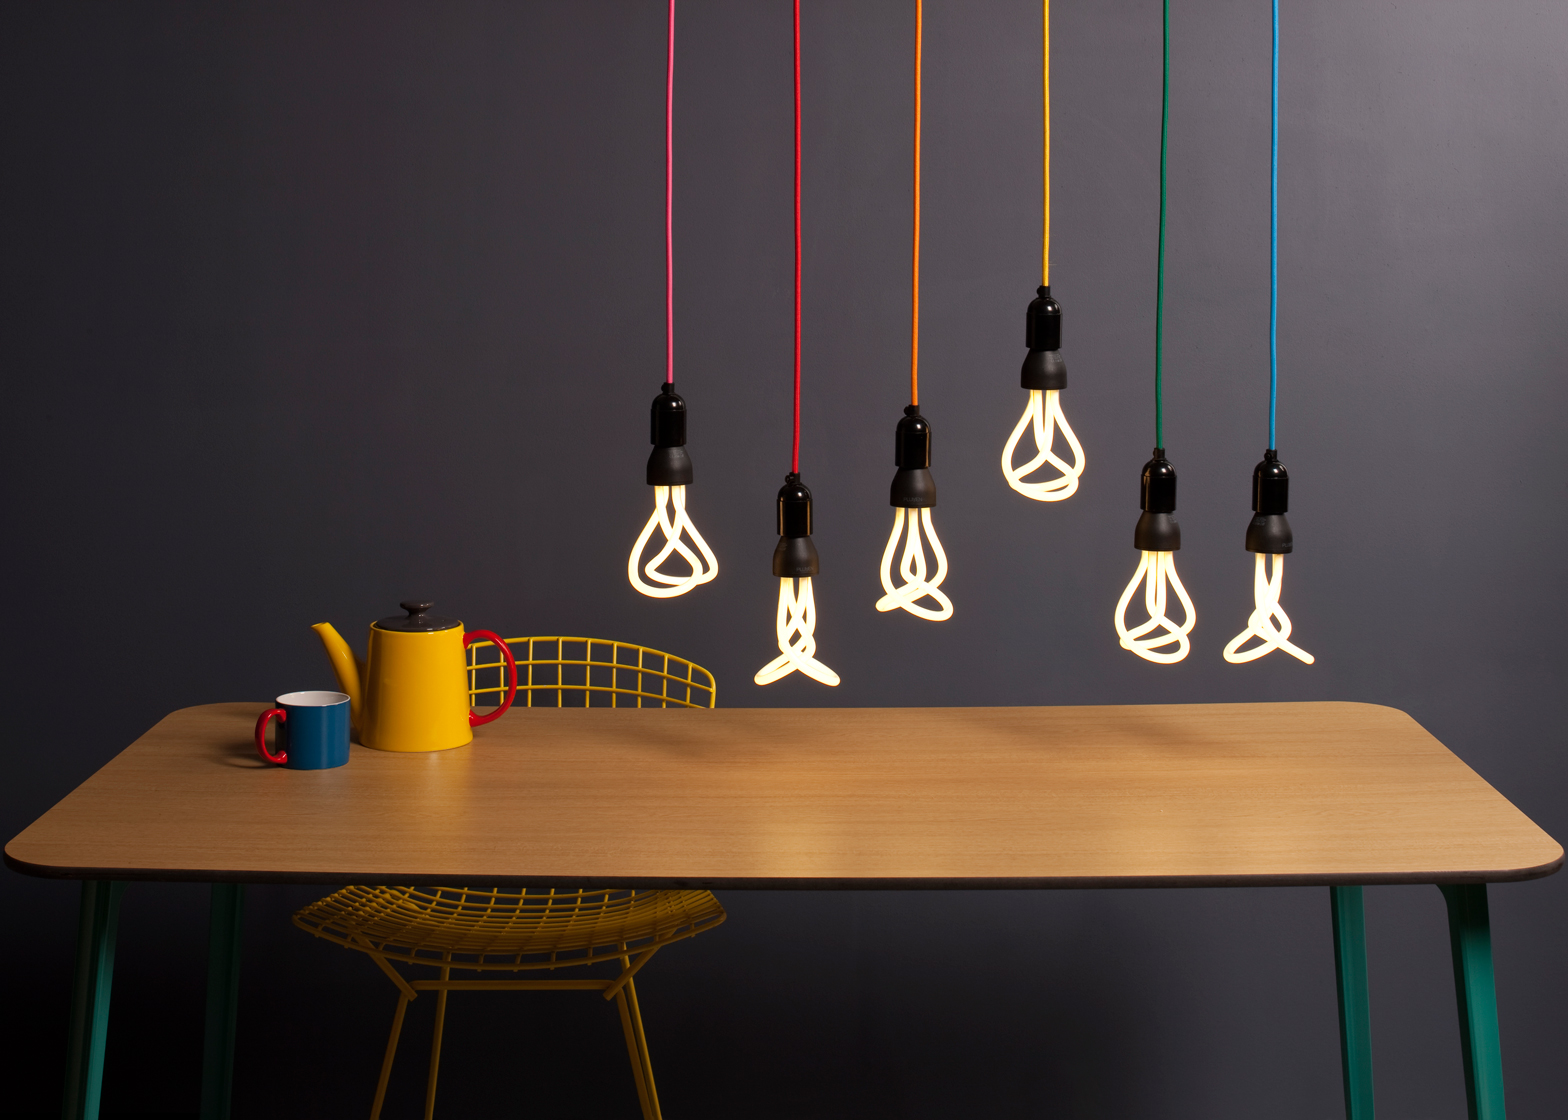 Plumen launches Crowdcube campaign